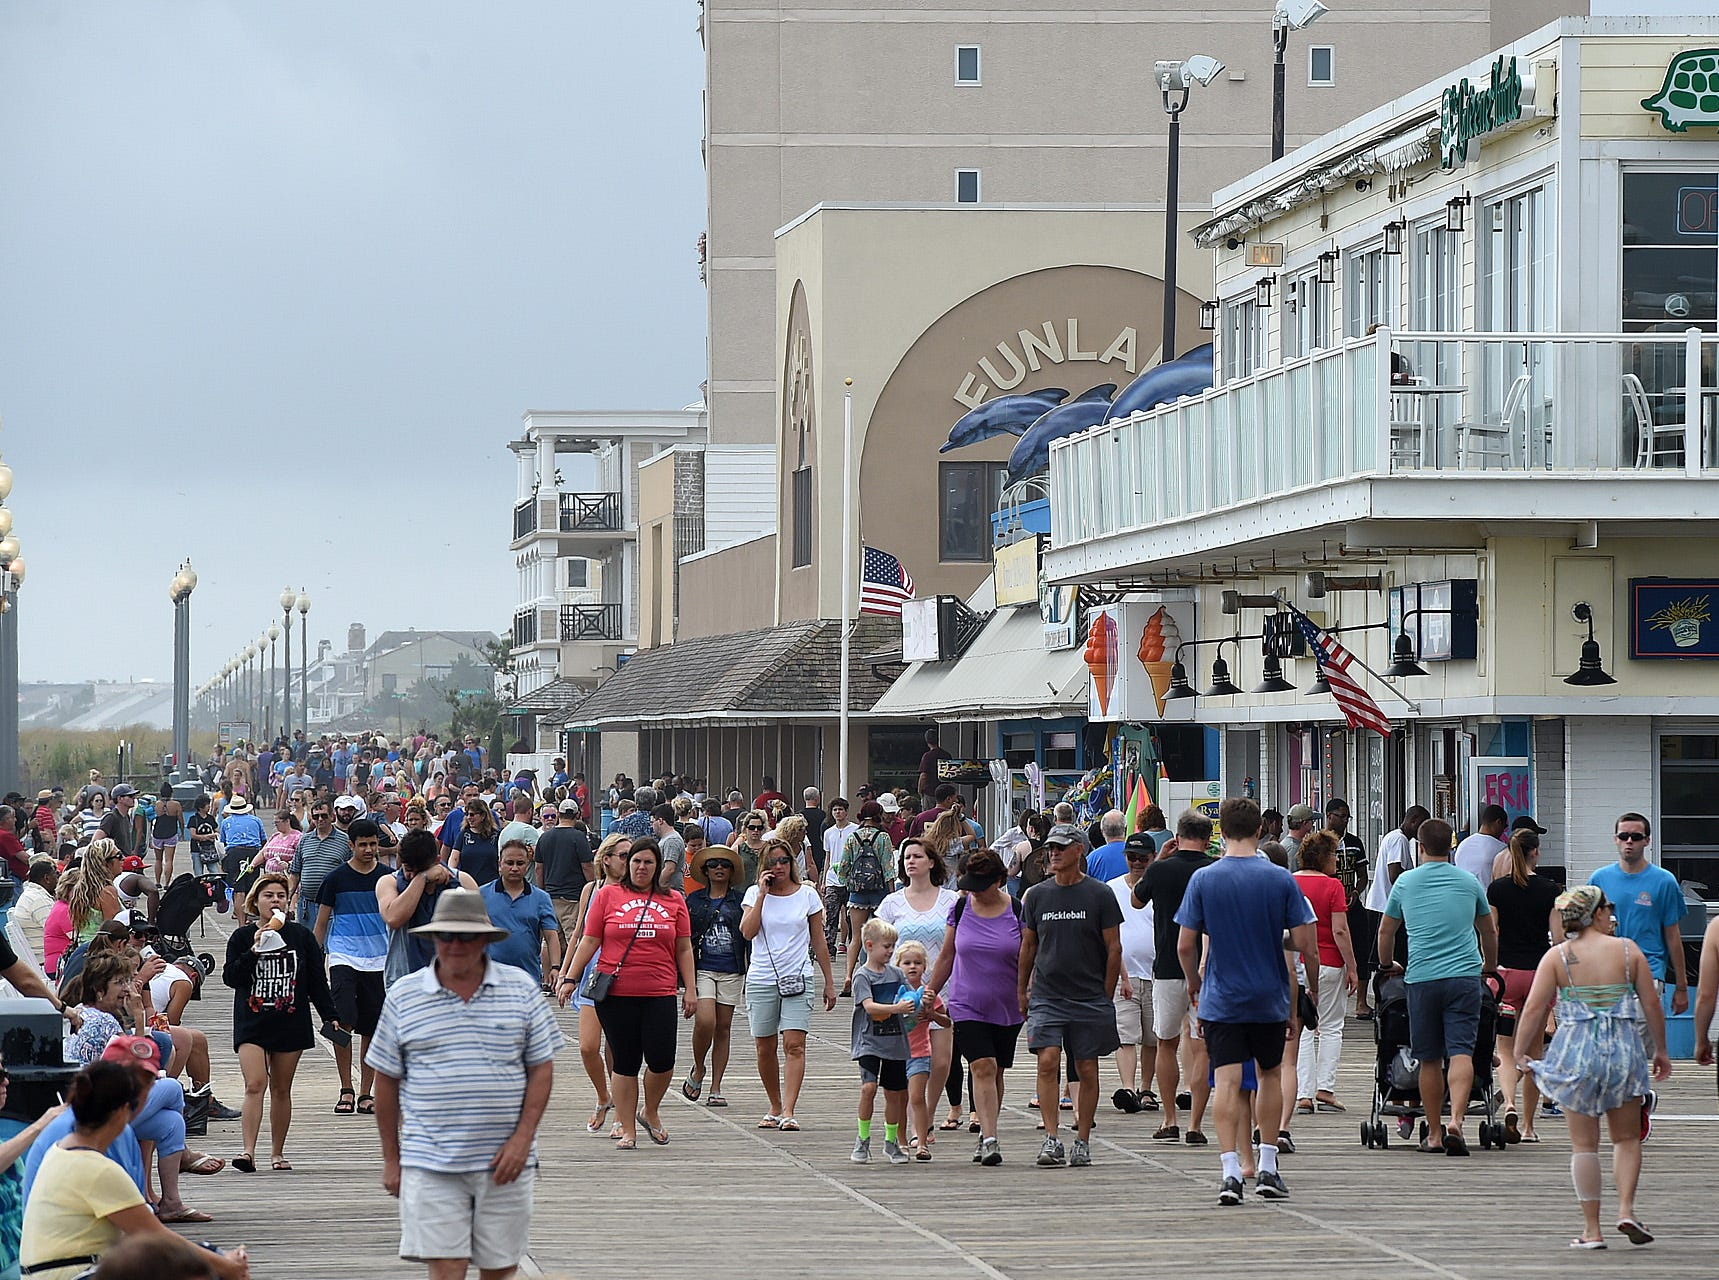 Dark and Cloudy skies have started the Labor Weekend in Rehoboth Beach but that has not deterred visitor's  who are walking the boardwalk and going to the beach. A northeast wind has the ocean churned up with Lifeguards keeping people close to shore. Special to the Daily Times / CHUCK SNYDER